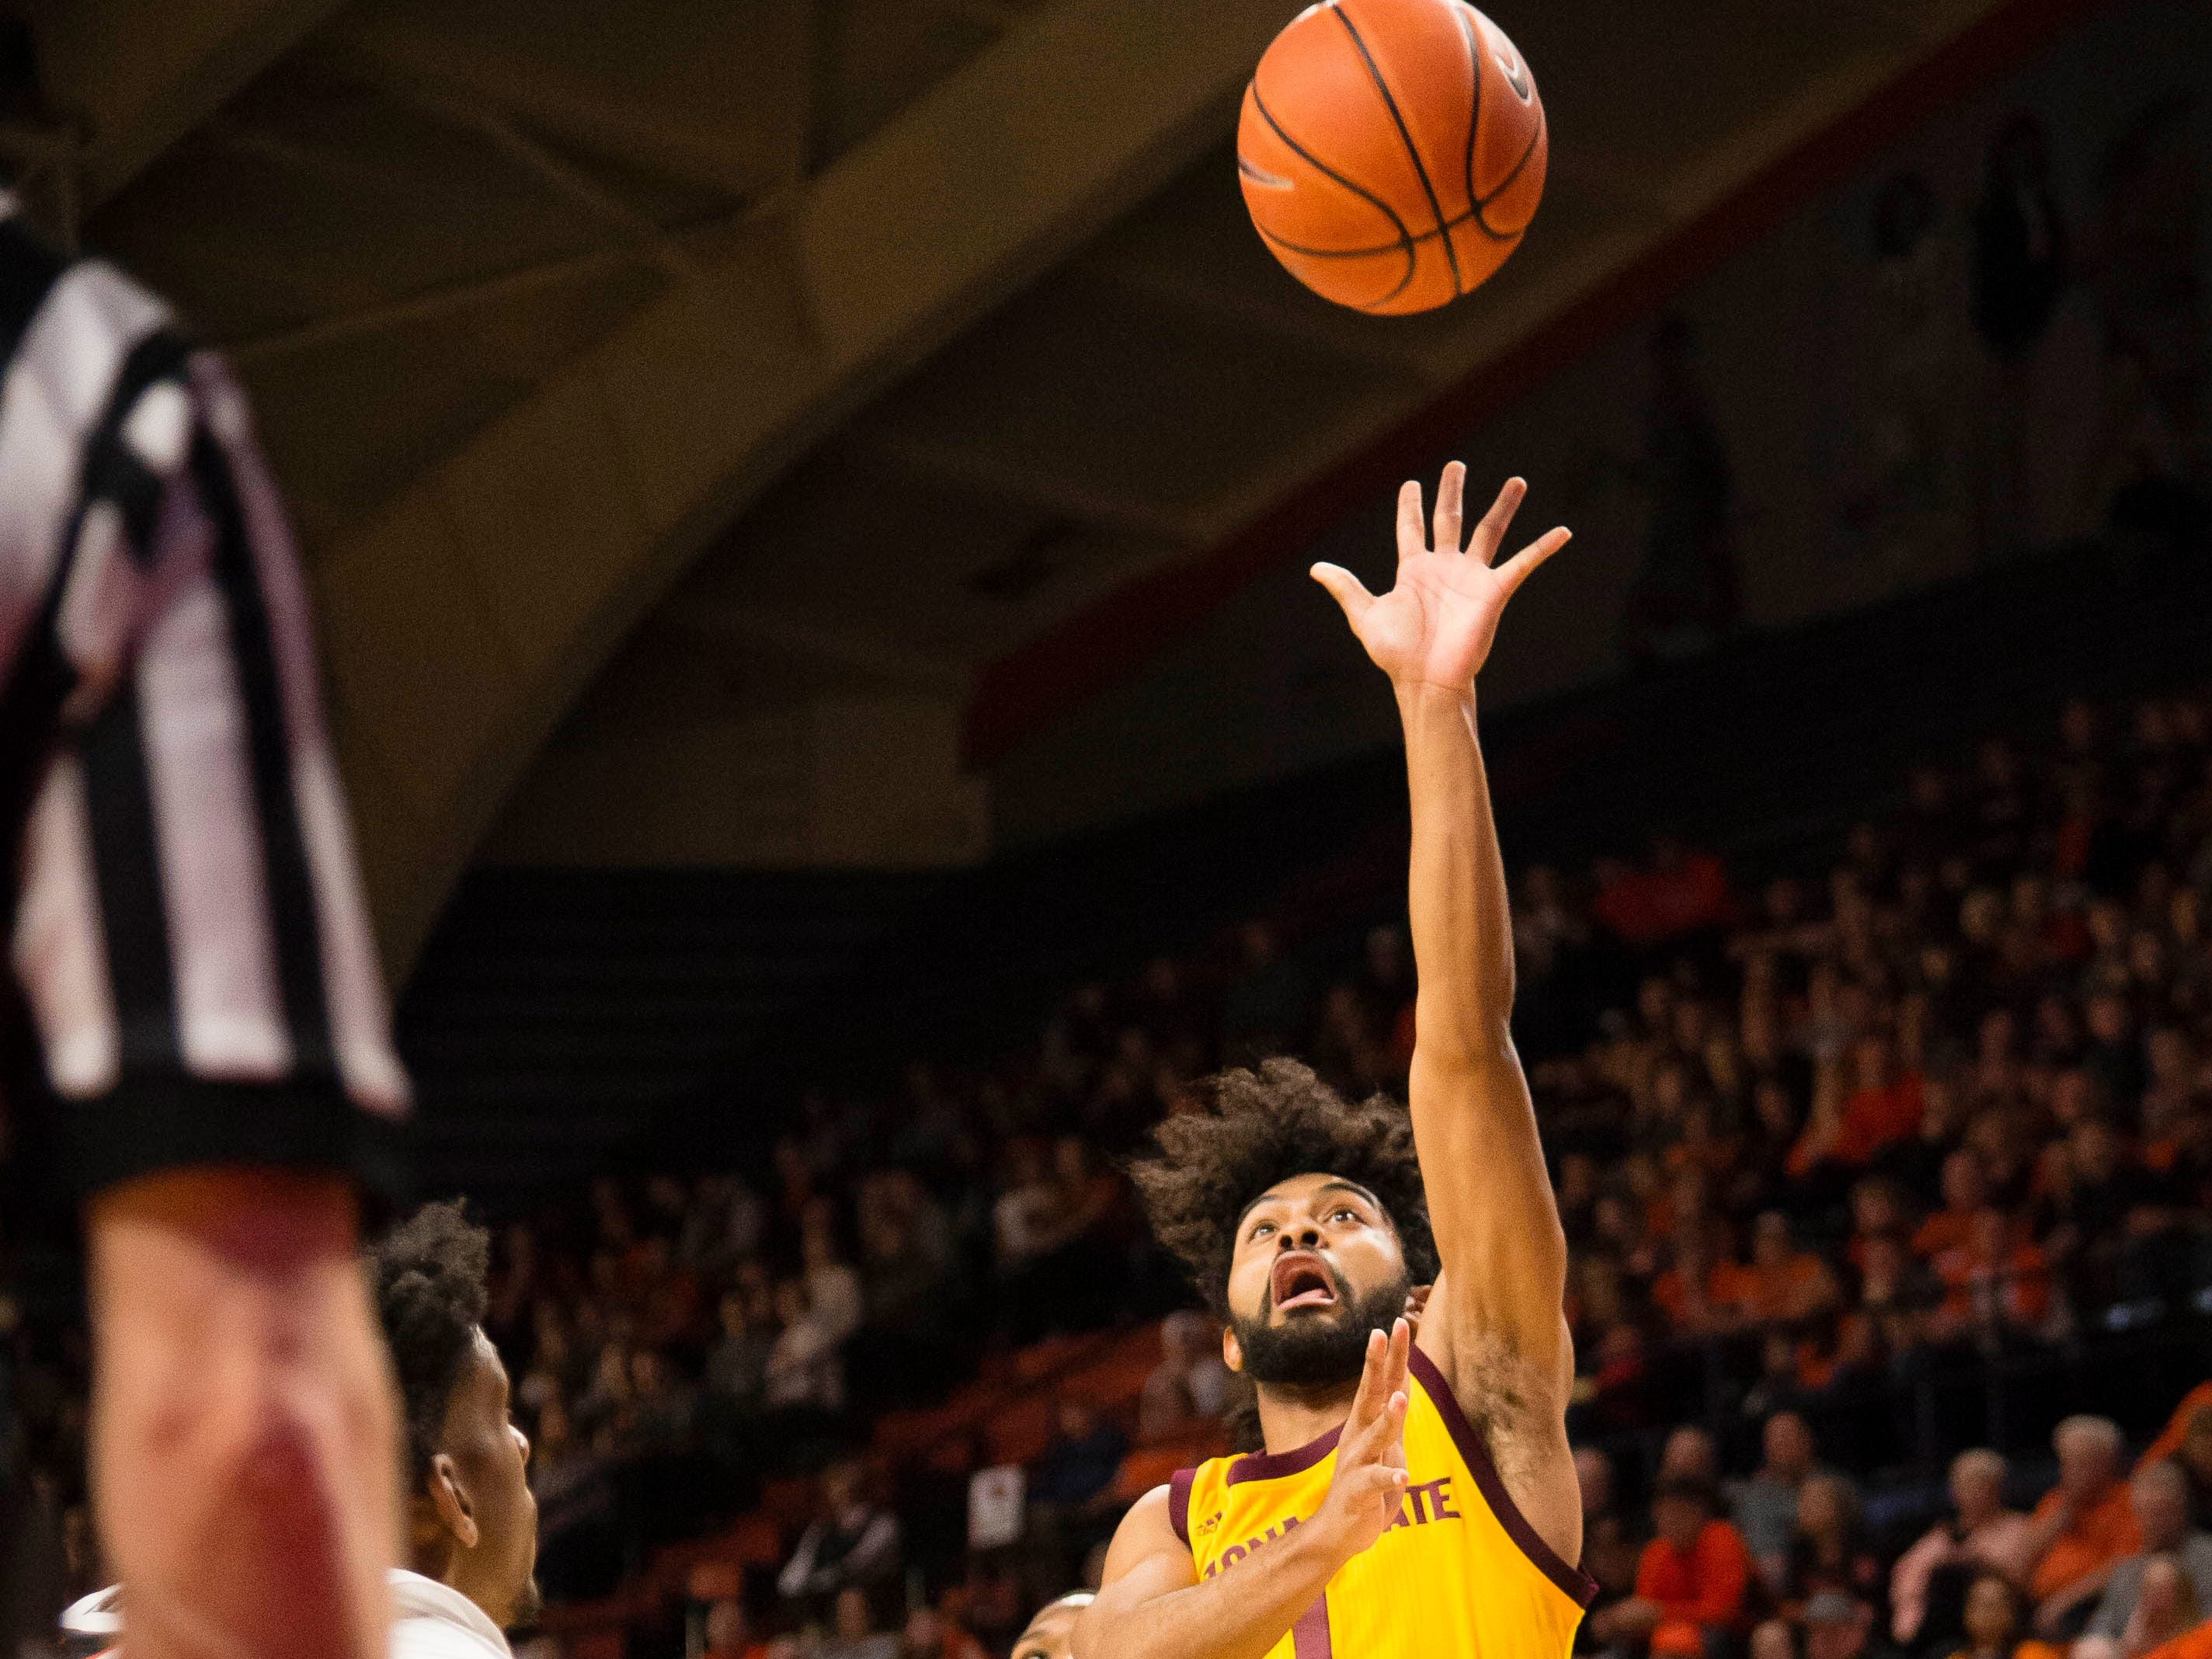 Mar 3, 2019; Corvallis, OR, USA; Arizona State Sun Devils guard Remy Martin (1) shoots the ball during the first half against then Oregon State Beavers at Gill Coliseum.